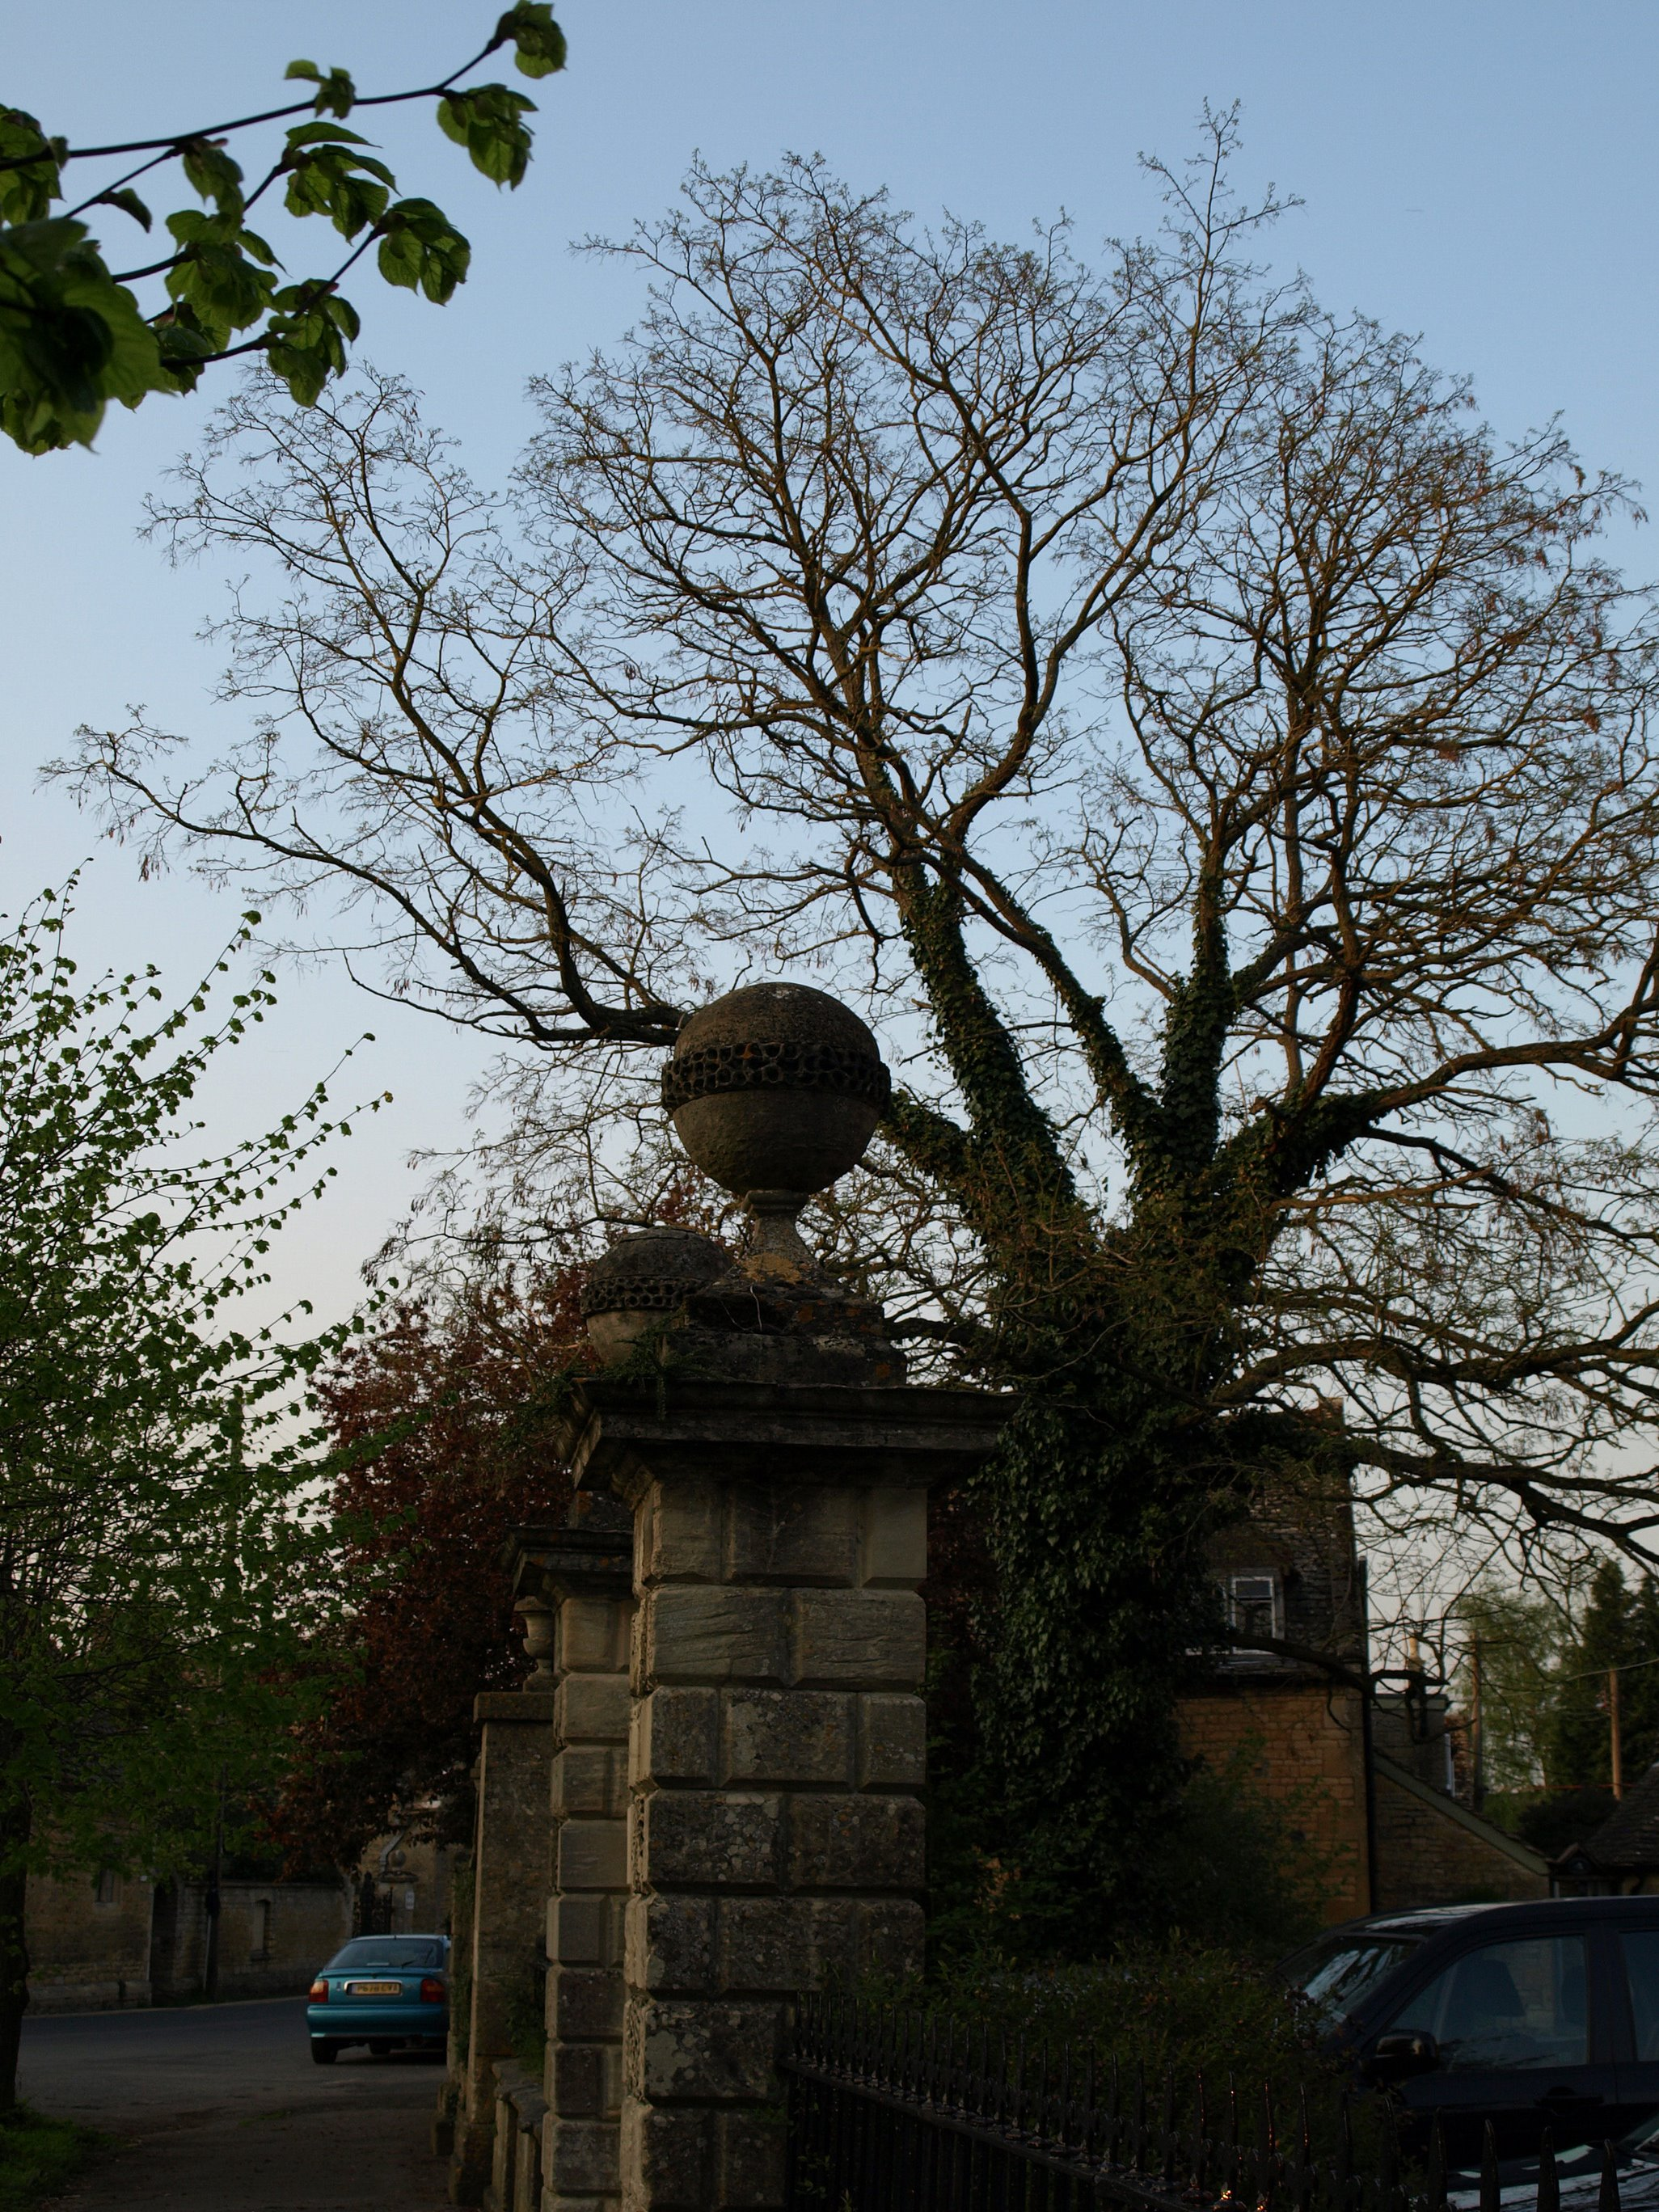 Orb on the Gate